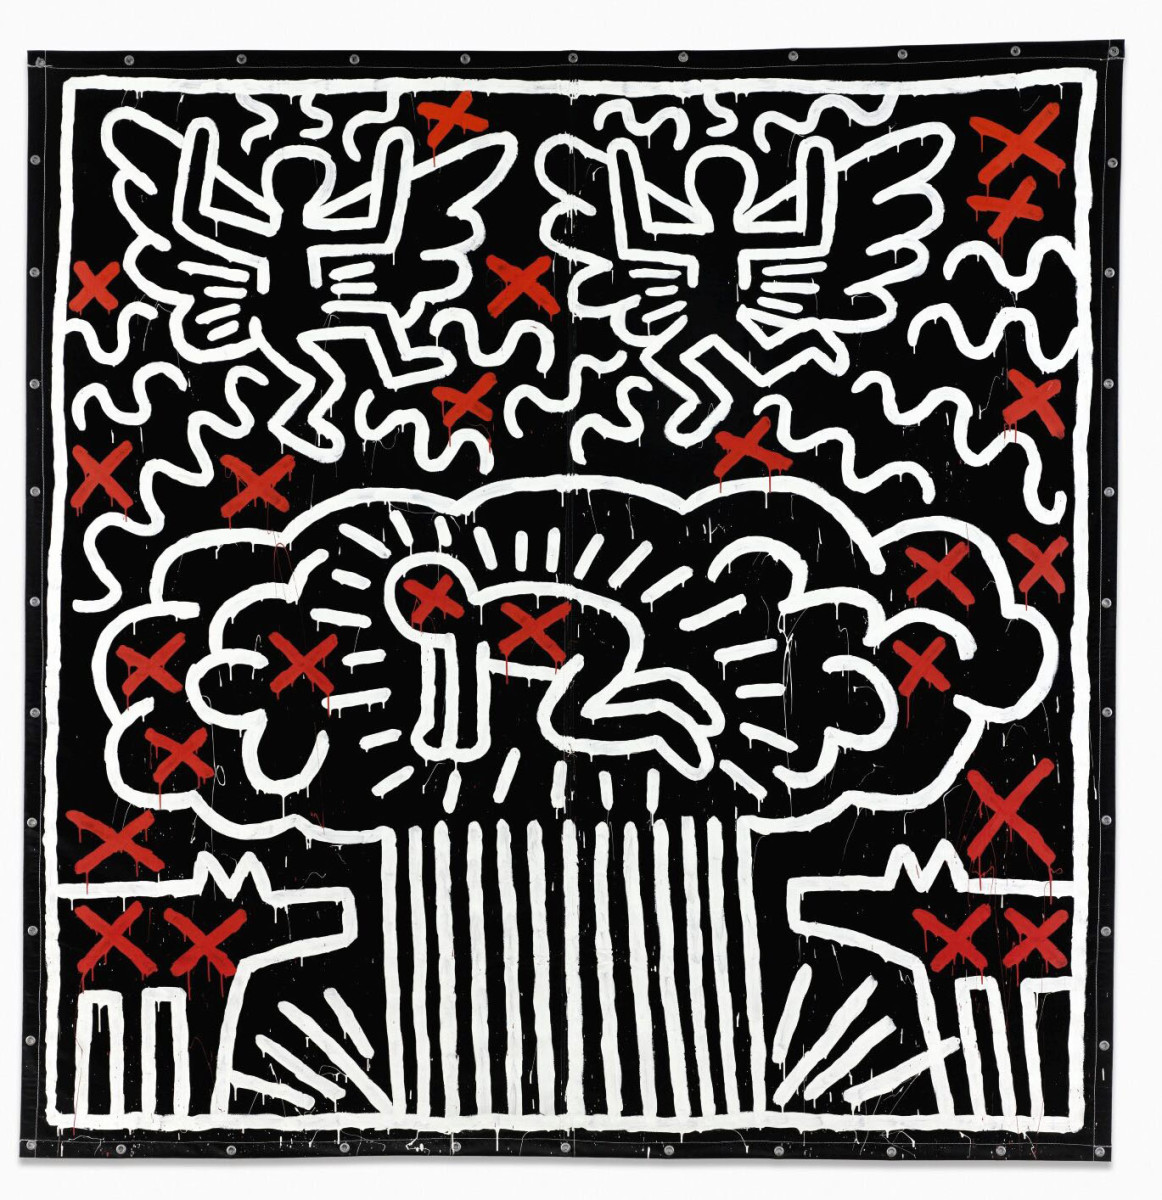 """Keith Haring's """"Untitled"""" (1982) sold for $6.5 million, the most ever paid for the artist's work."""